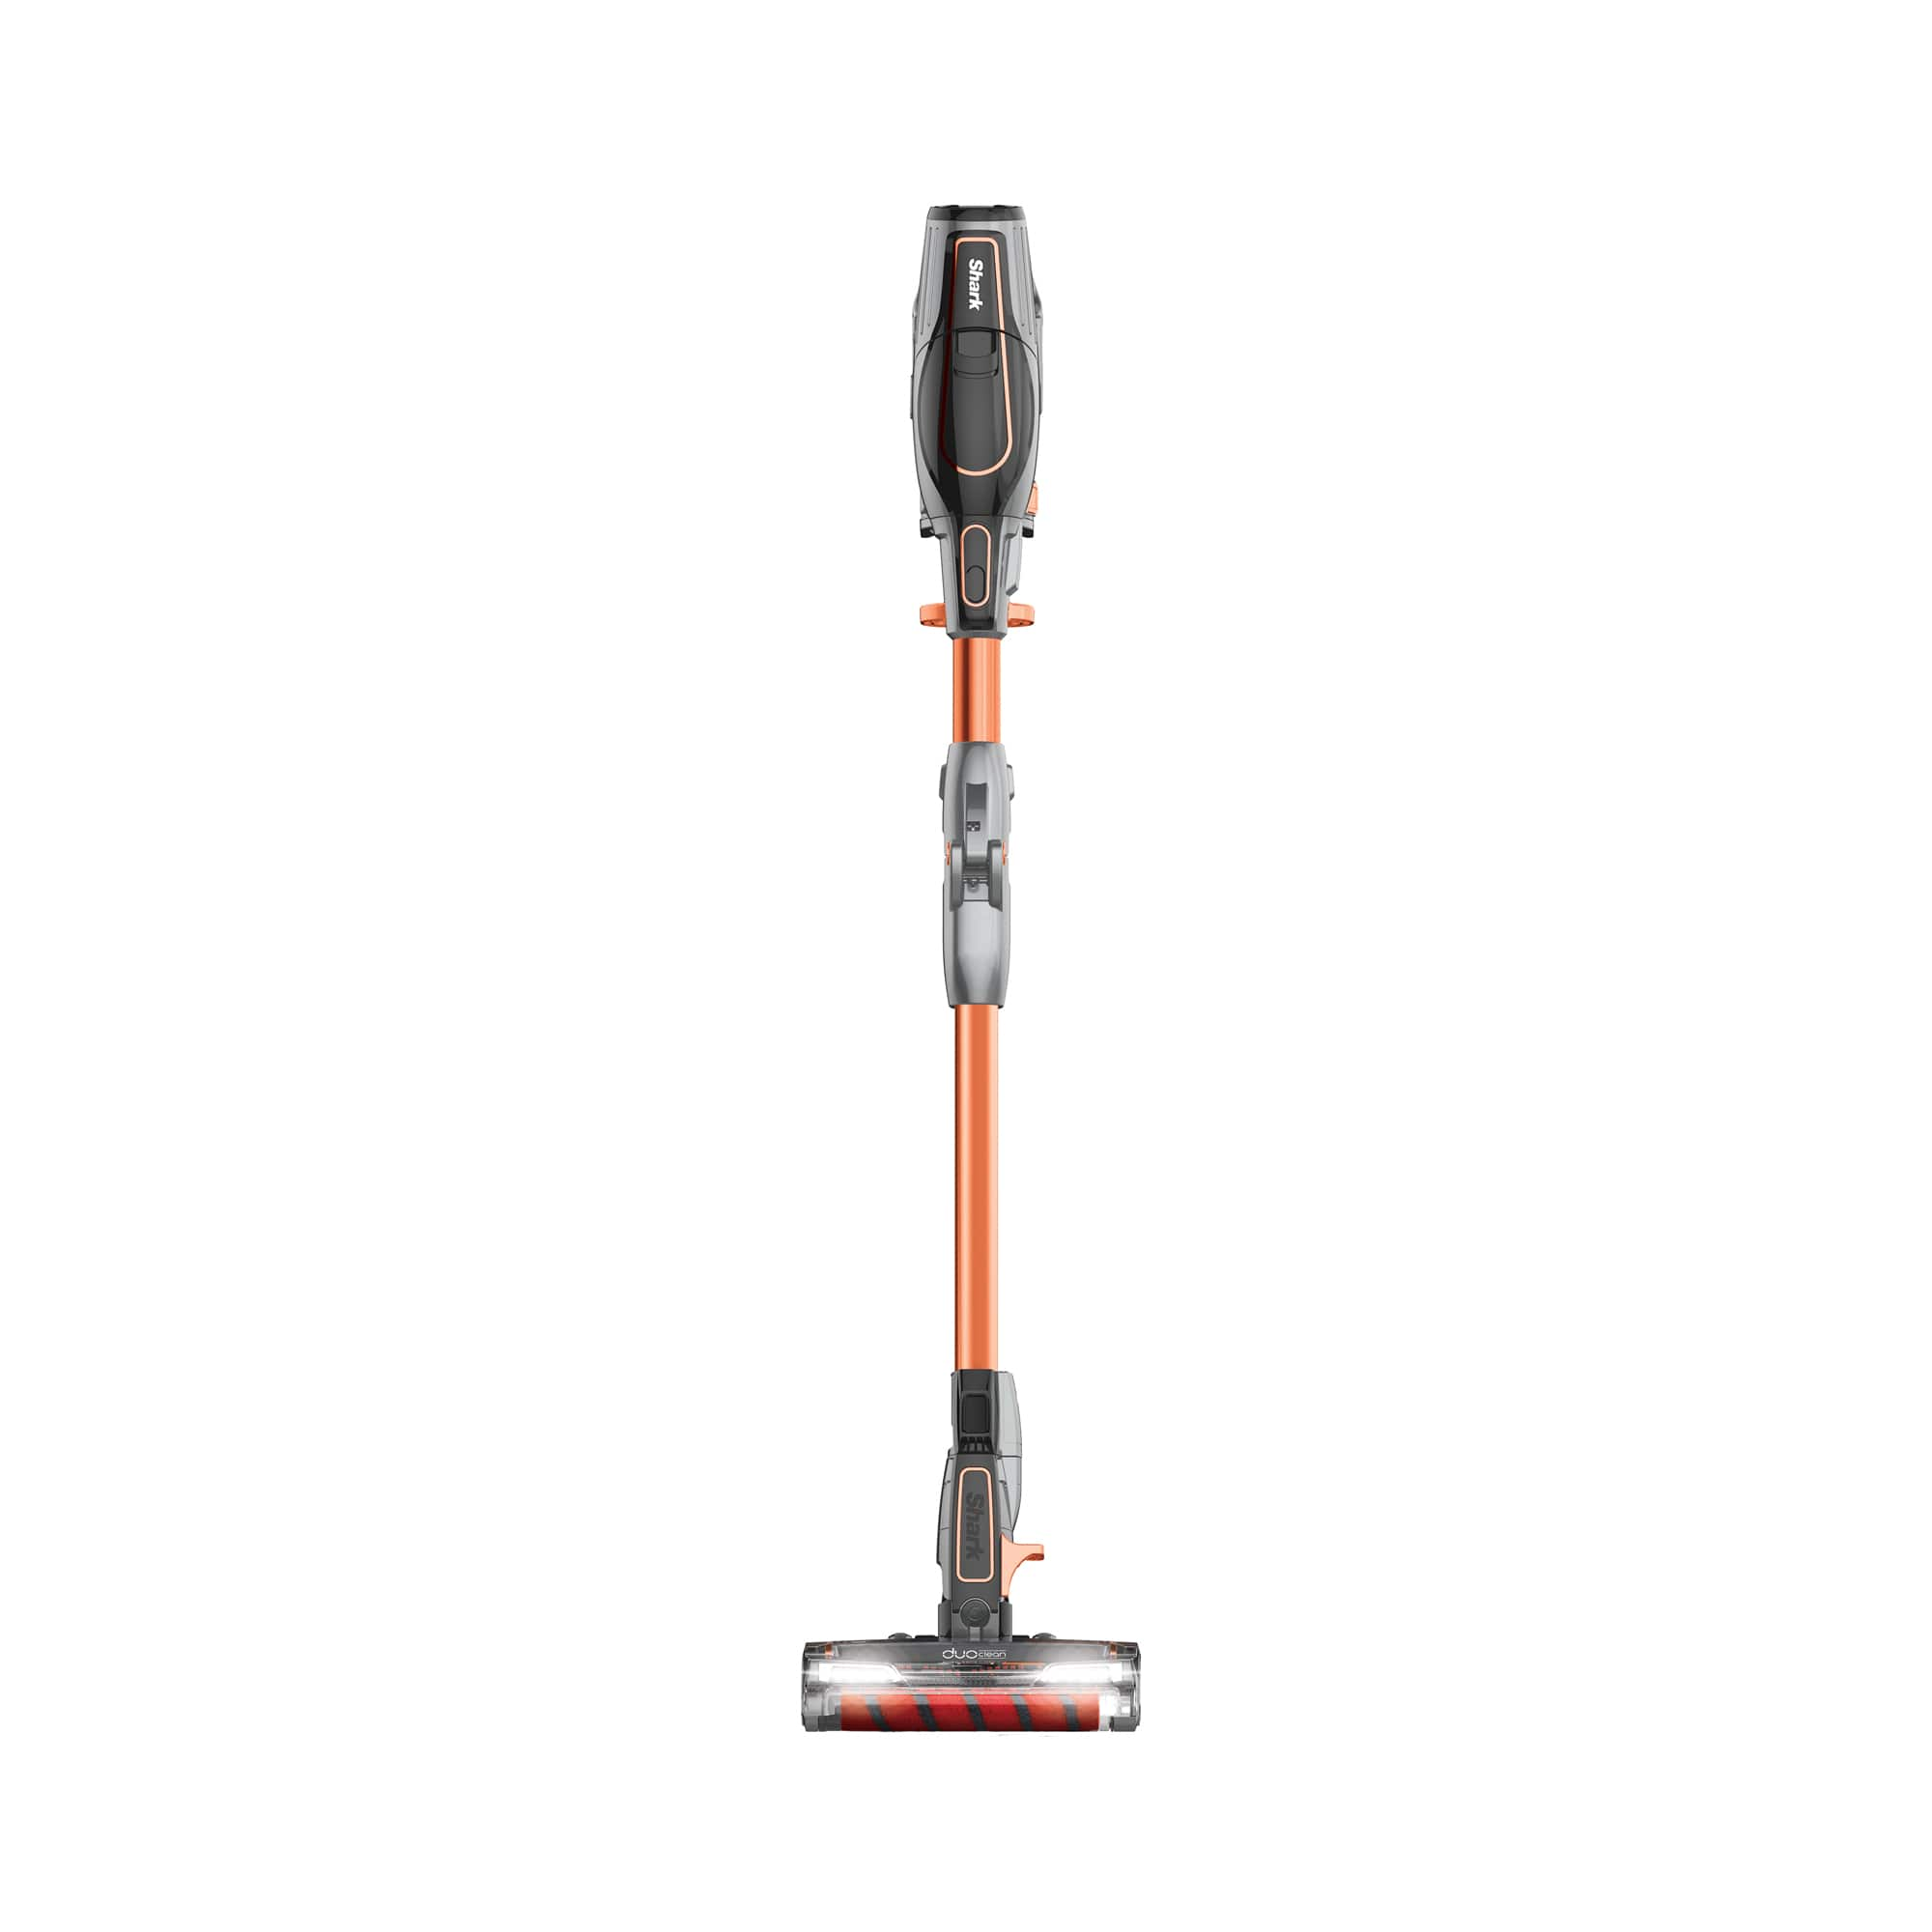 [Walmart] Shark IONFlex DuoClean Cordless Ultra-Light Vacuum, IF200 B&M $100 YMMV